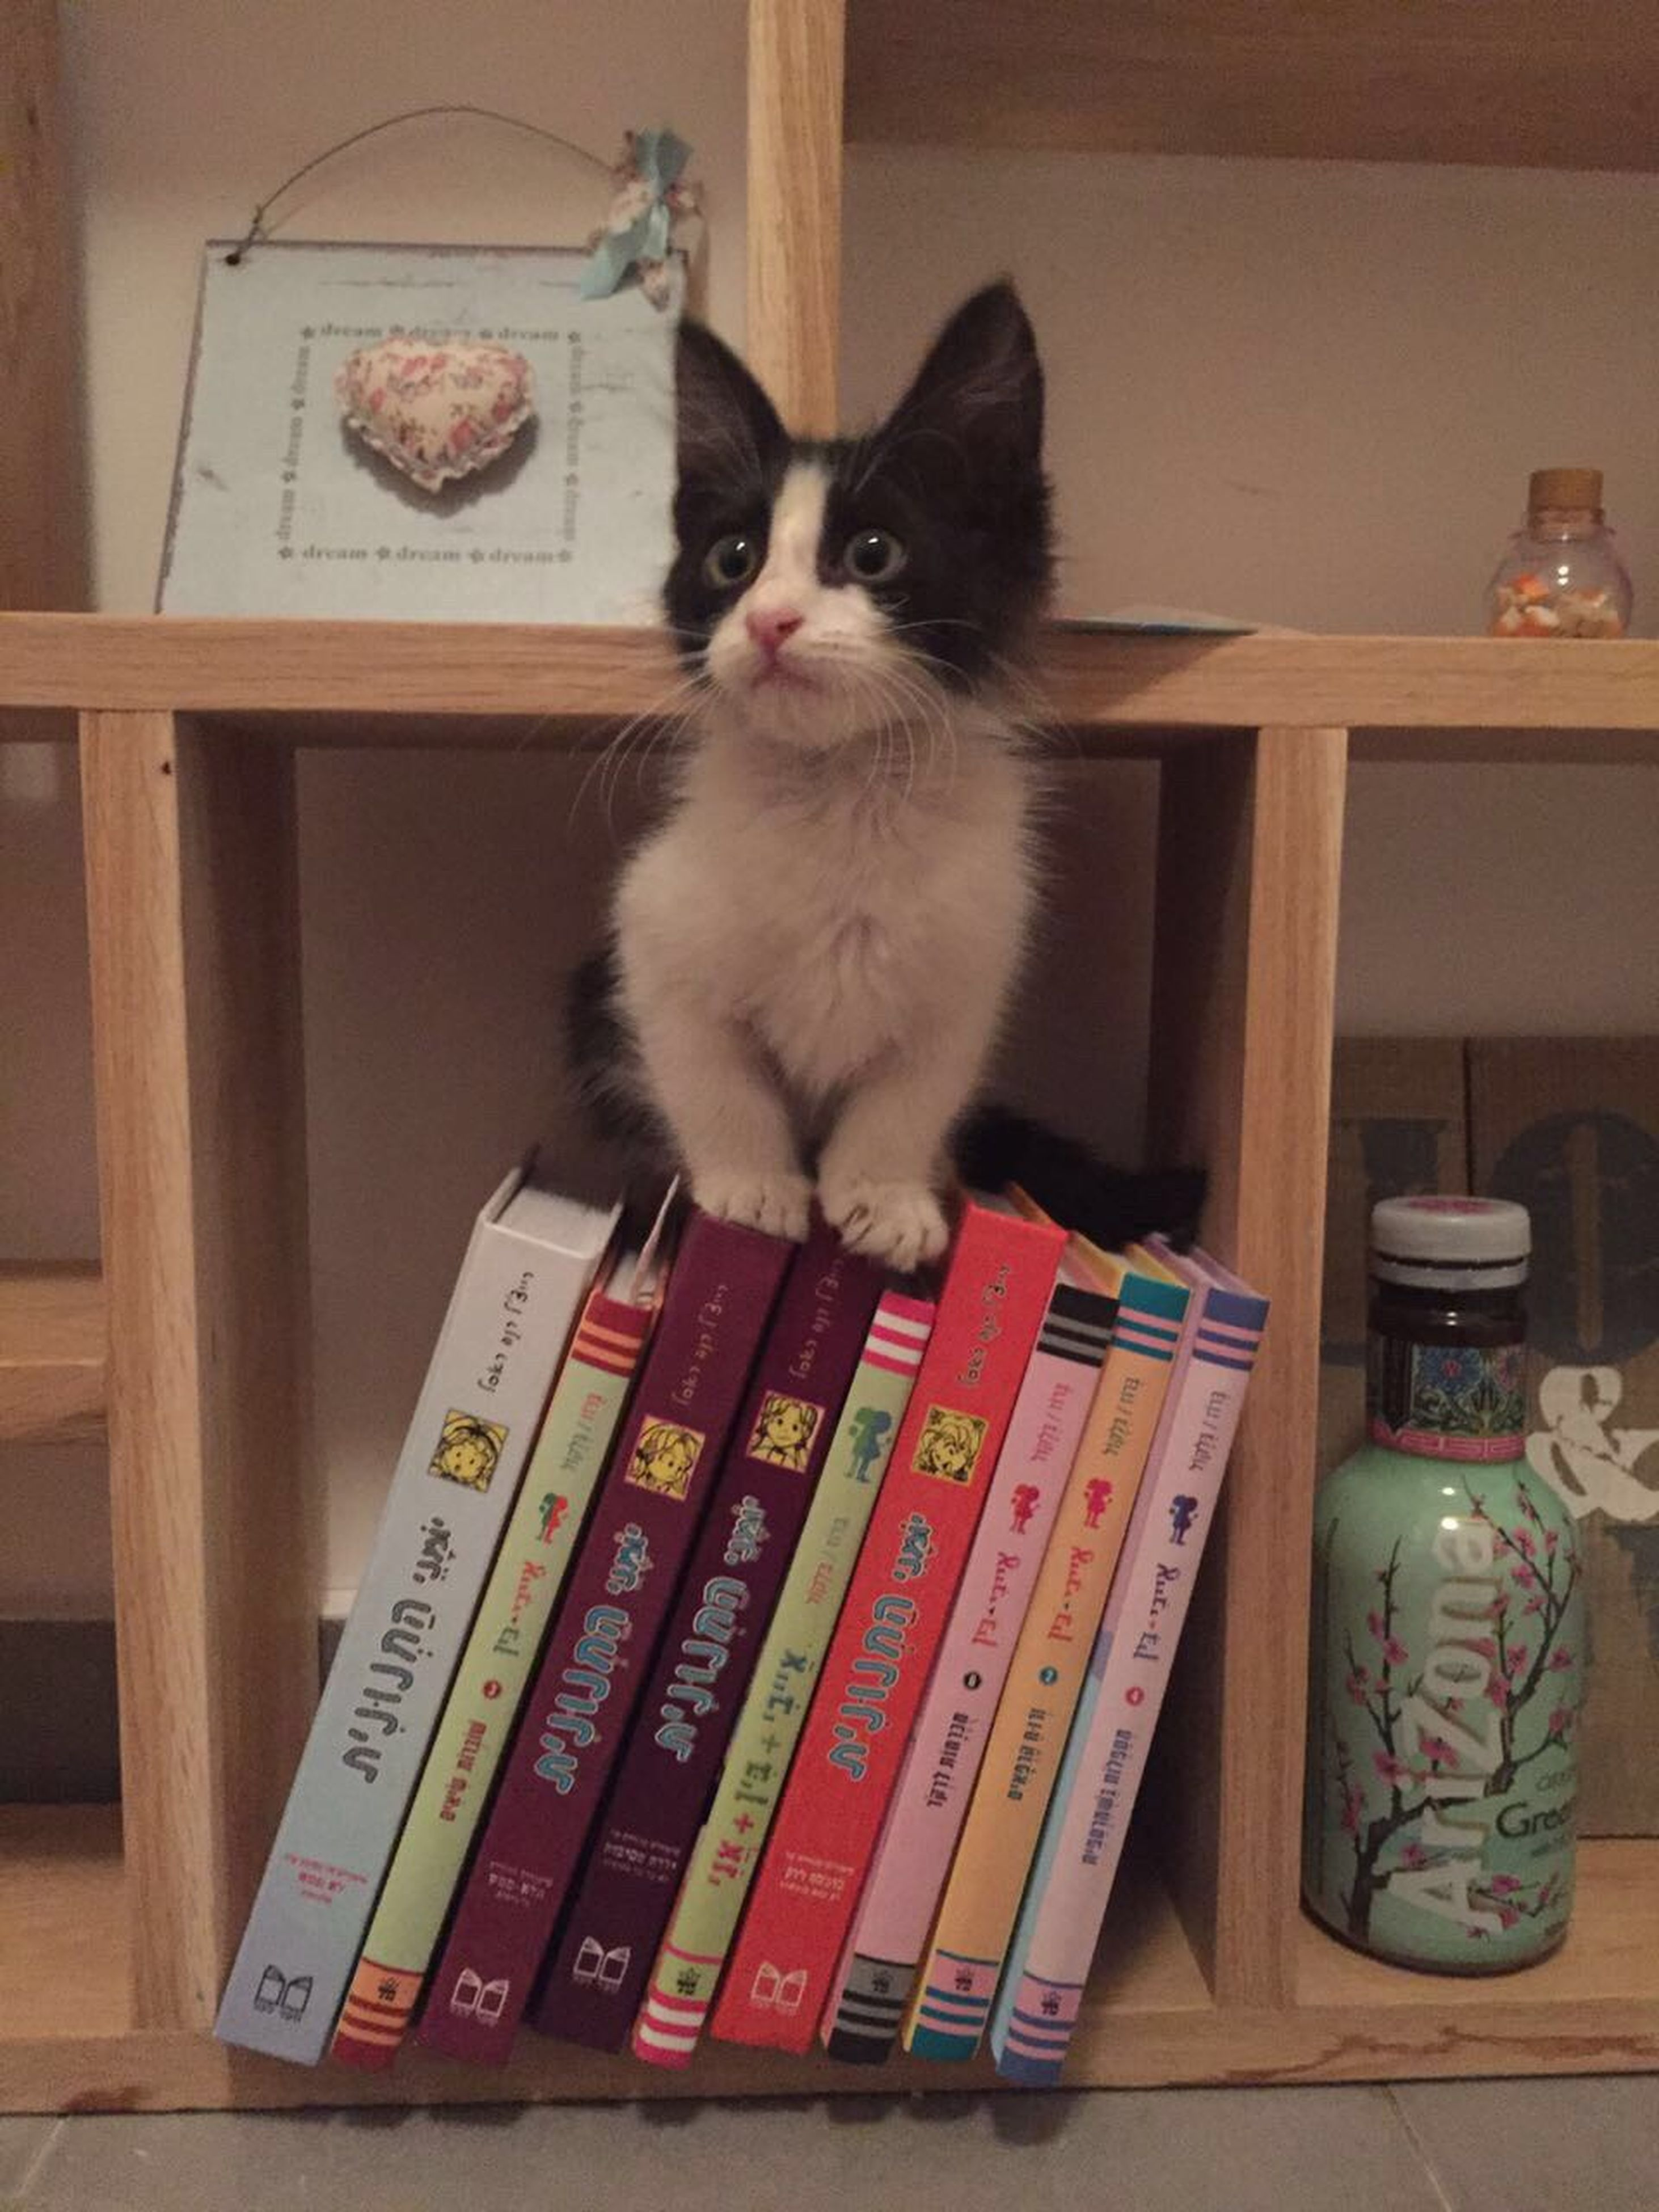 indoors, domestic cat, home interior, cat, table, pets, animal themes, one animal, book, feline, domestic animals, chair, shelf, home, no people, sitting, wood - material, communication, text, relaxation